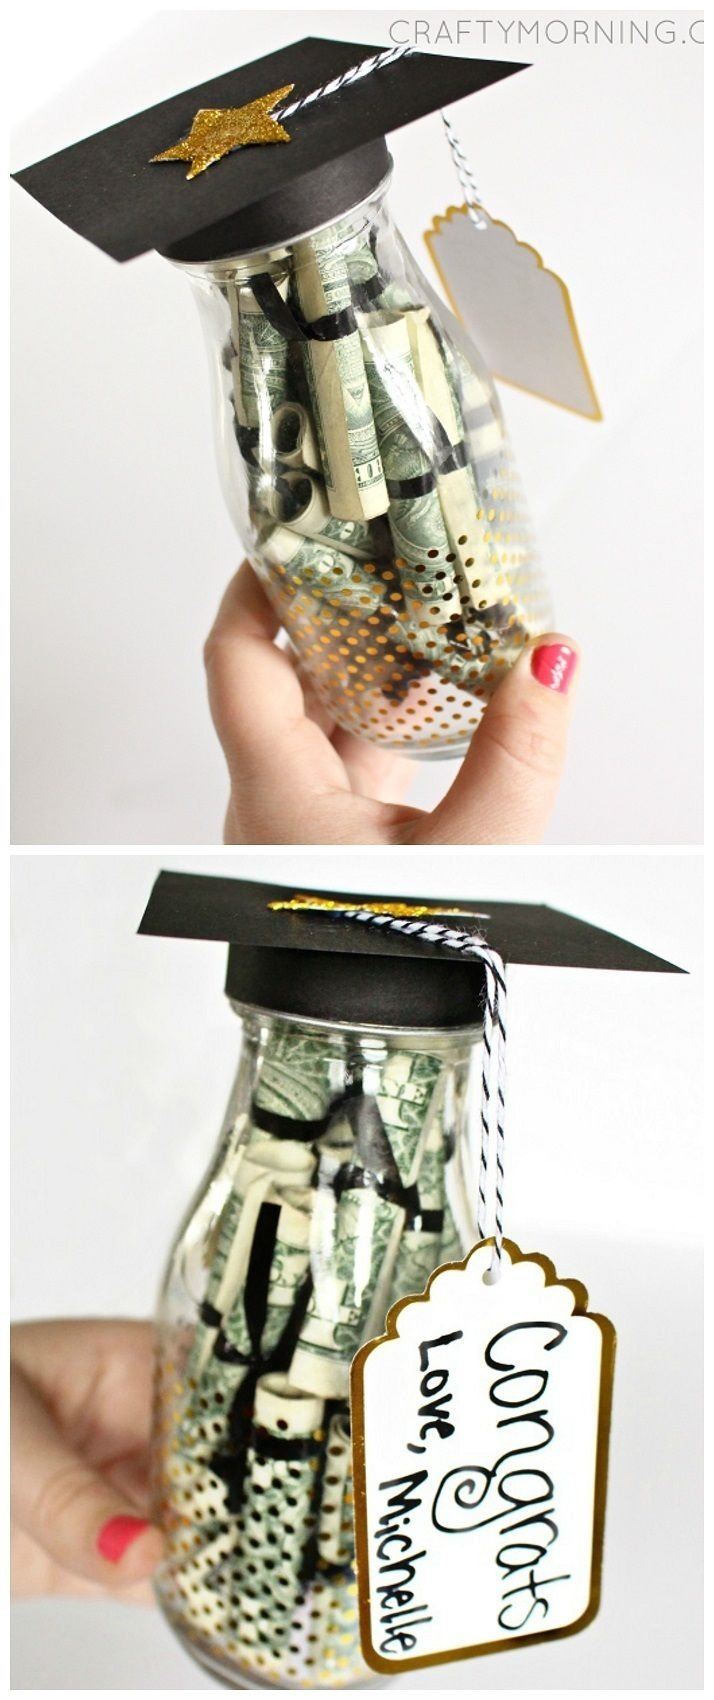 10 Awesome College Graduation Gift Ideas For Her graduation glass bottle gift dollar bill diplomas perfect for 20 2020